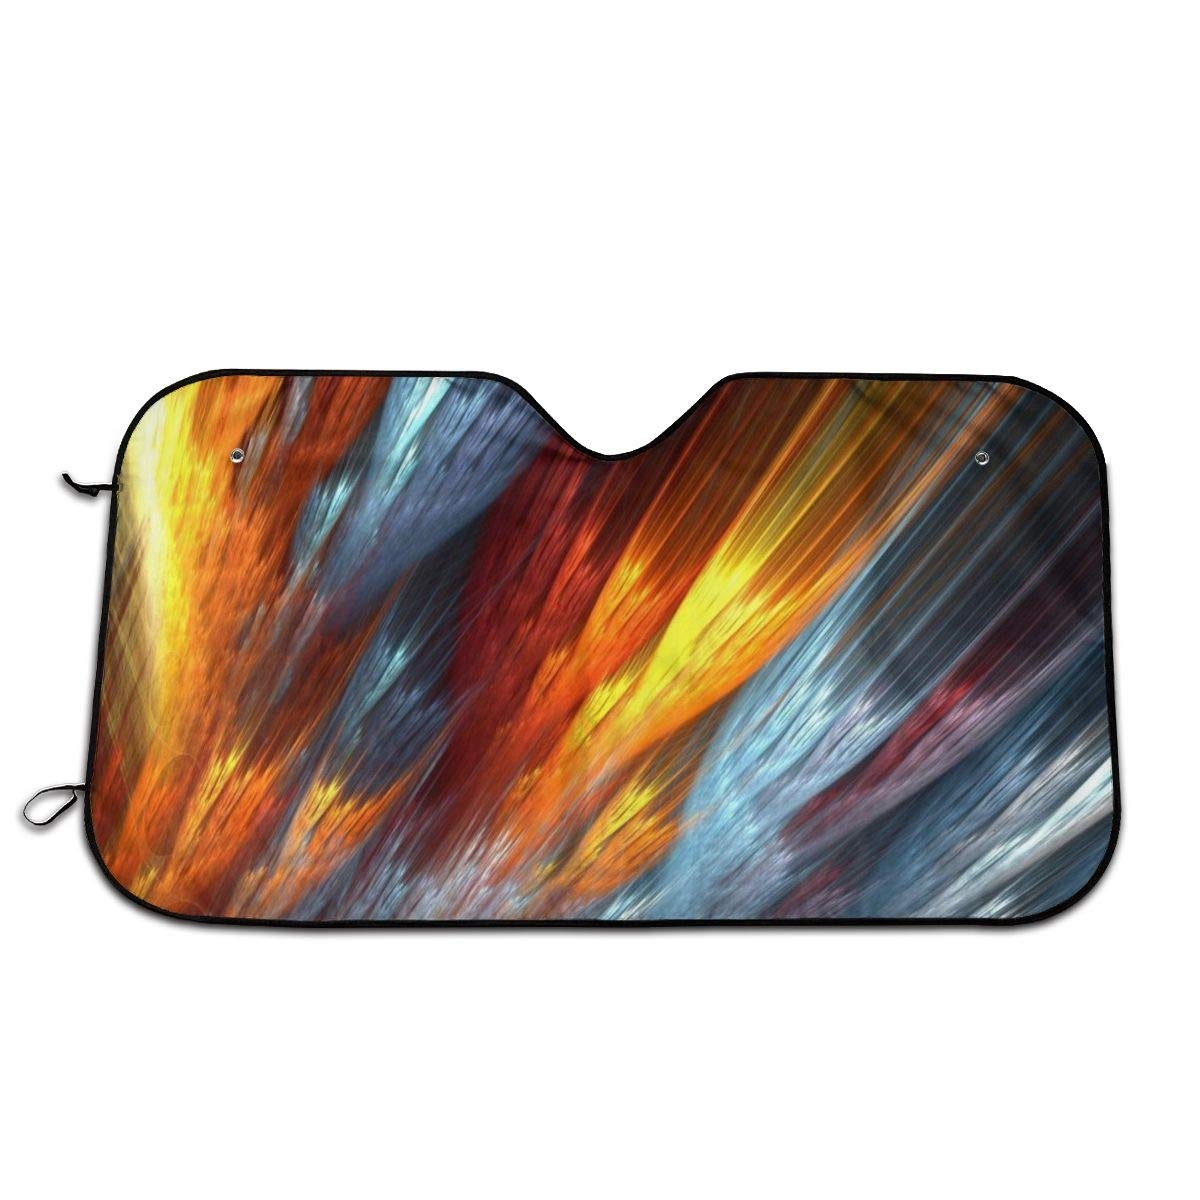 Abstract Fire Windshield Sun Shade Cover Visor Protector Sunshades Covers Awning Shades for Car SUV Truck Universal 70x130cm